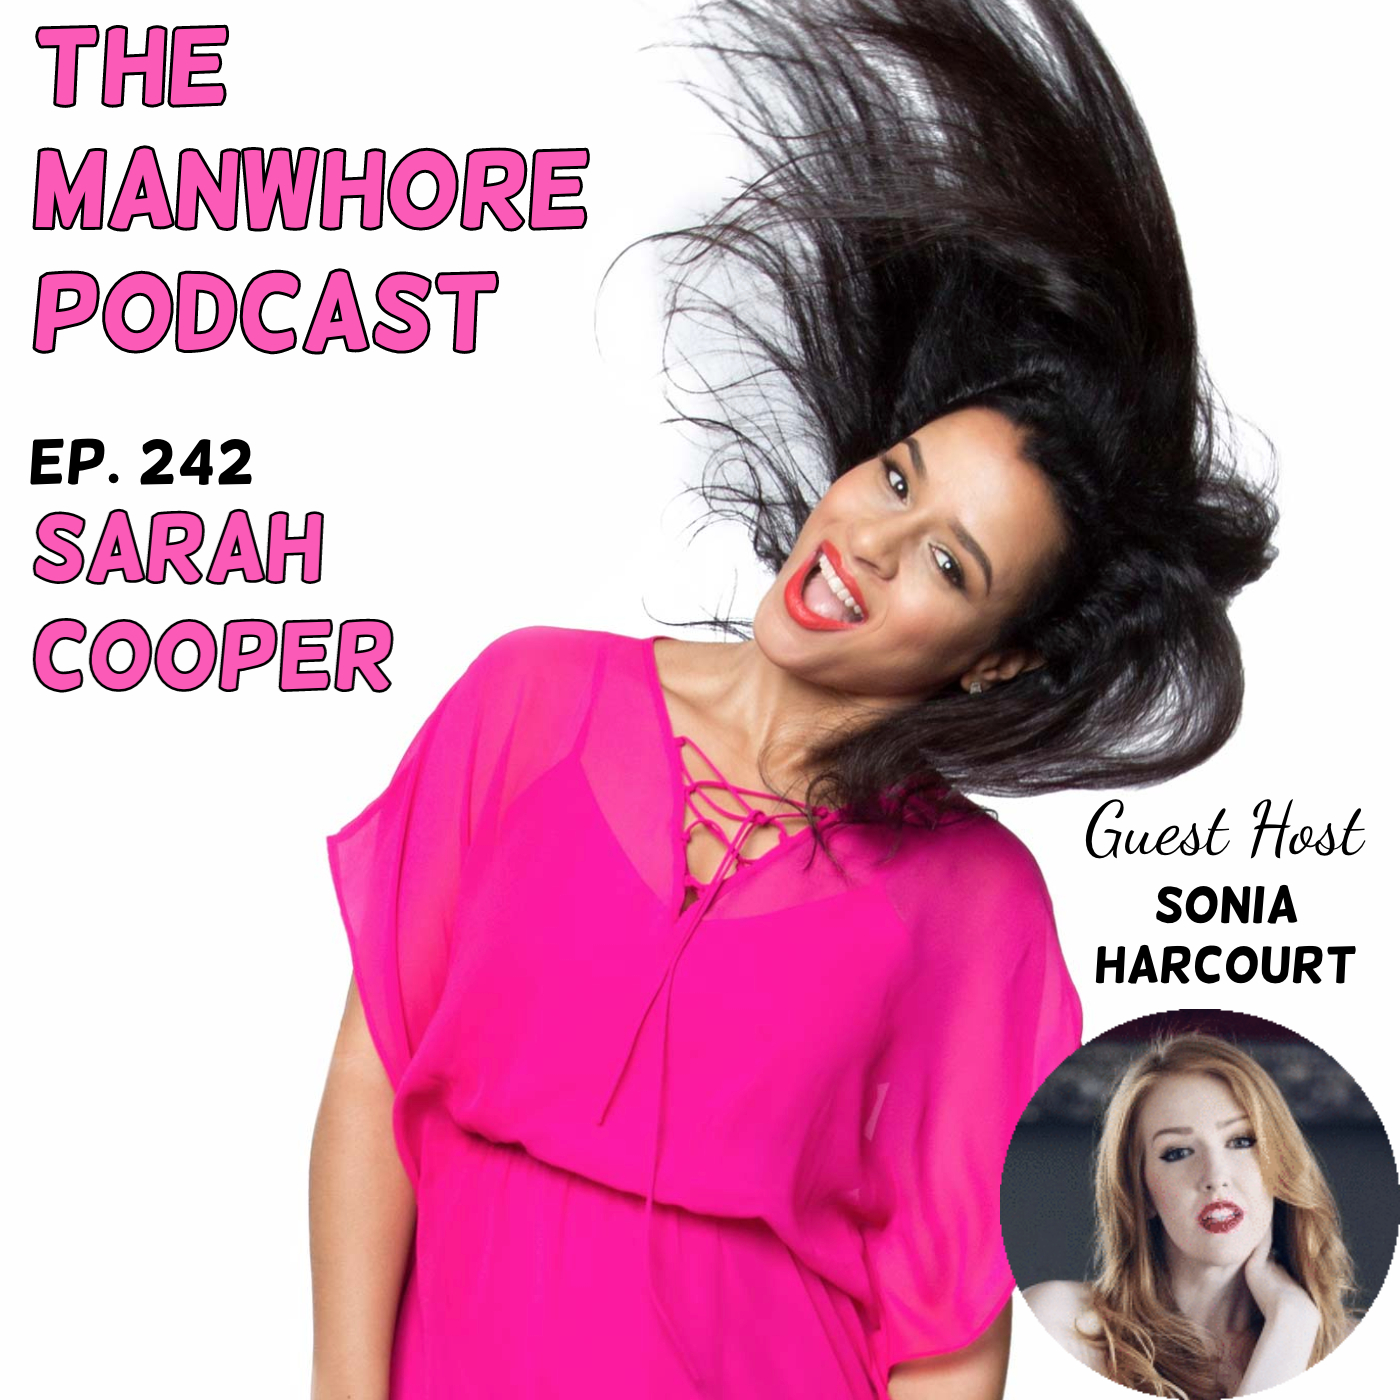 The Manwhore Podcast: A Sex-Positive Quest - Ep. 242: How to be Successful Without Hurting Men's Feelings with Sarah Cooper // guest host Sonia Harcourt